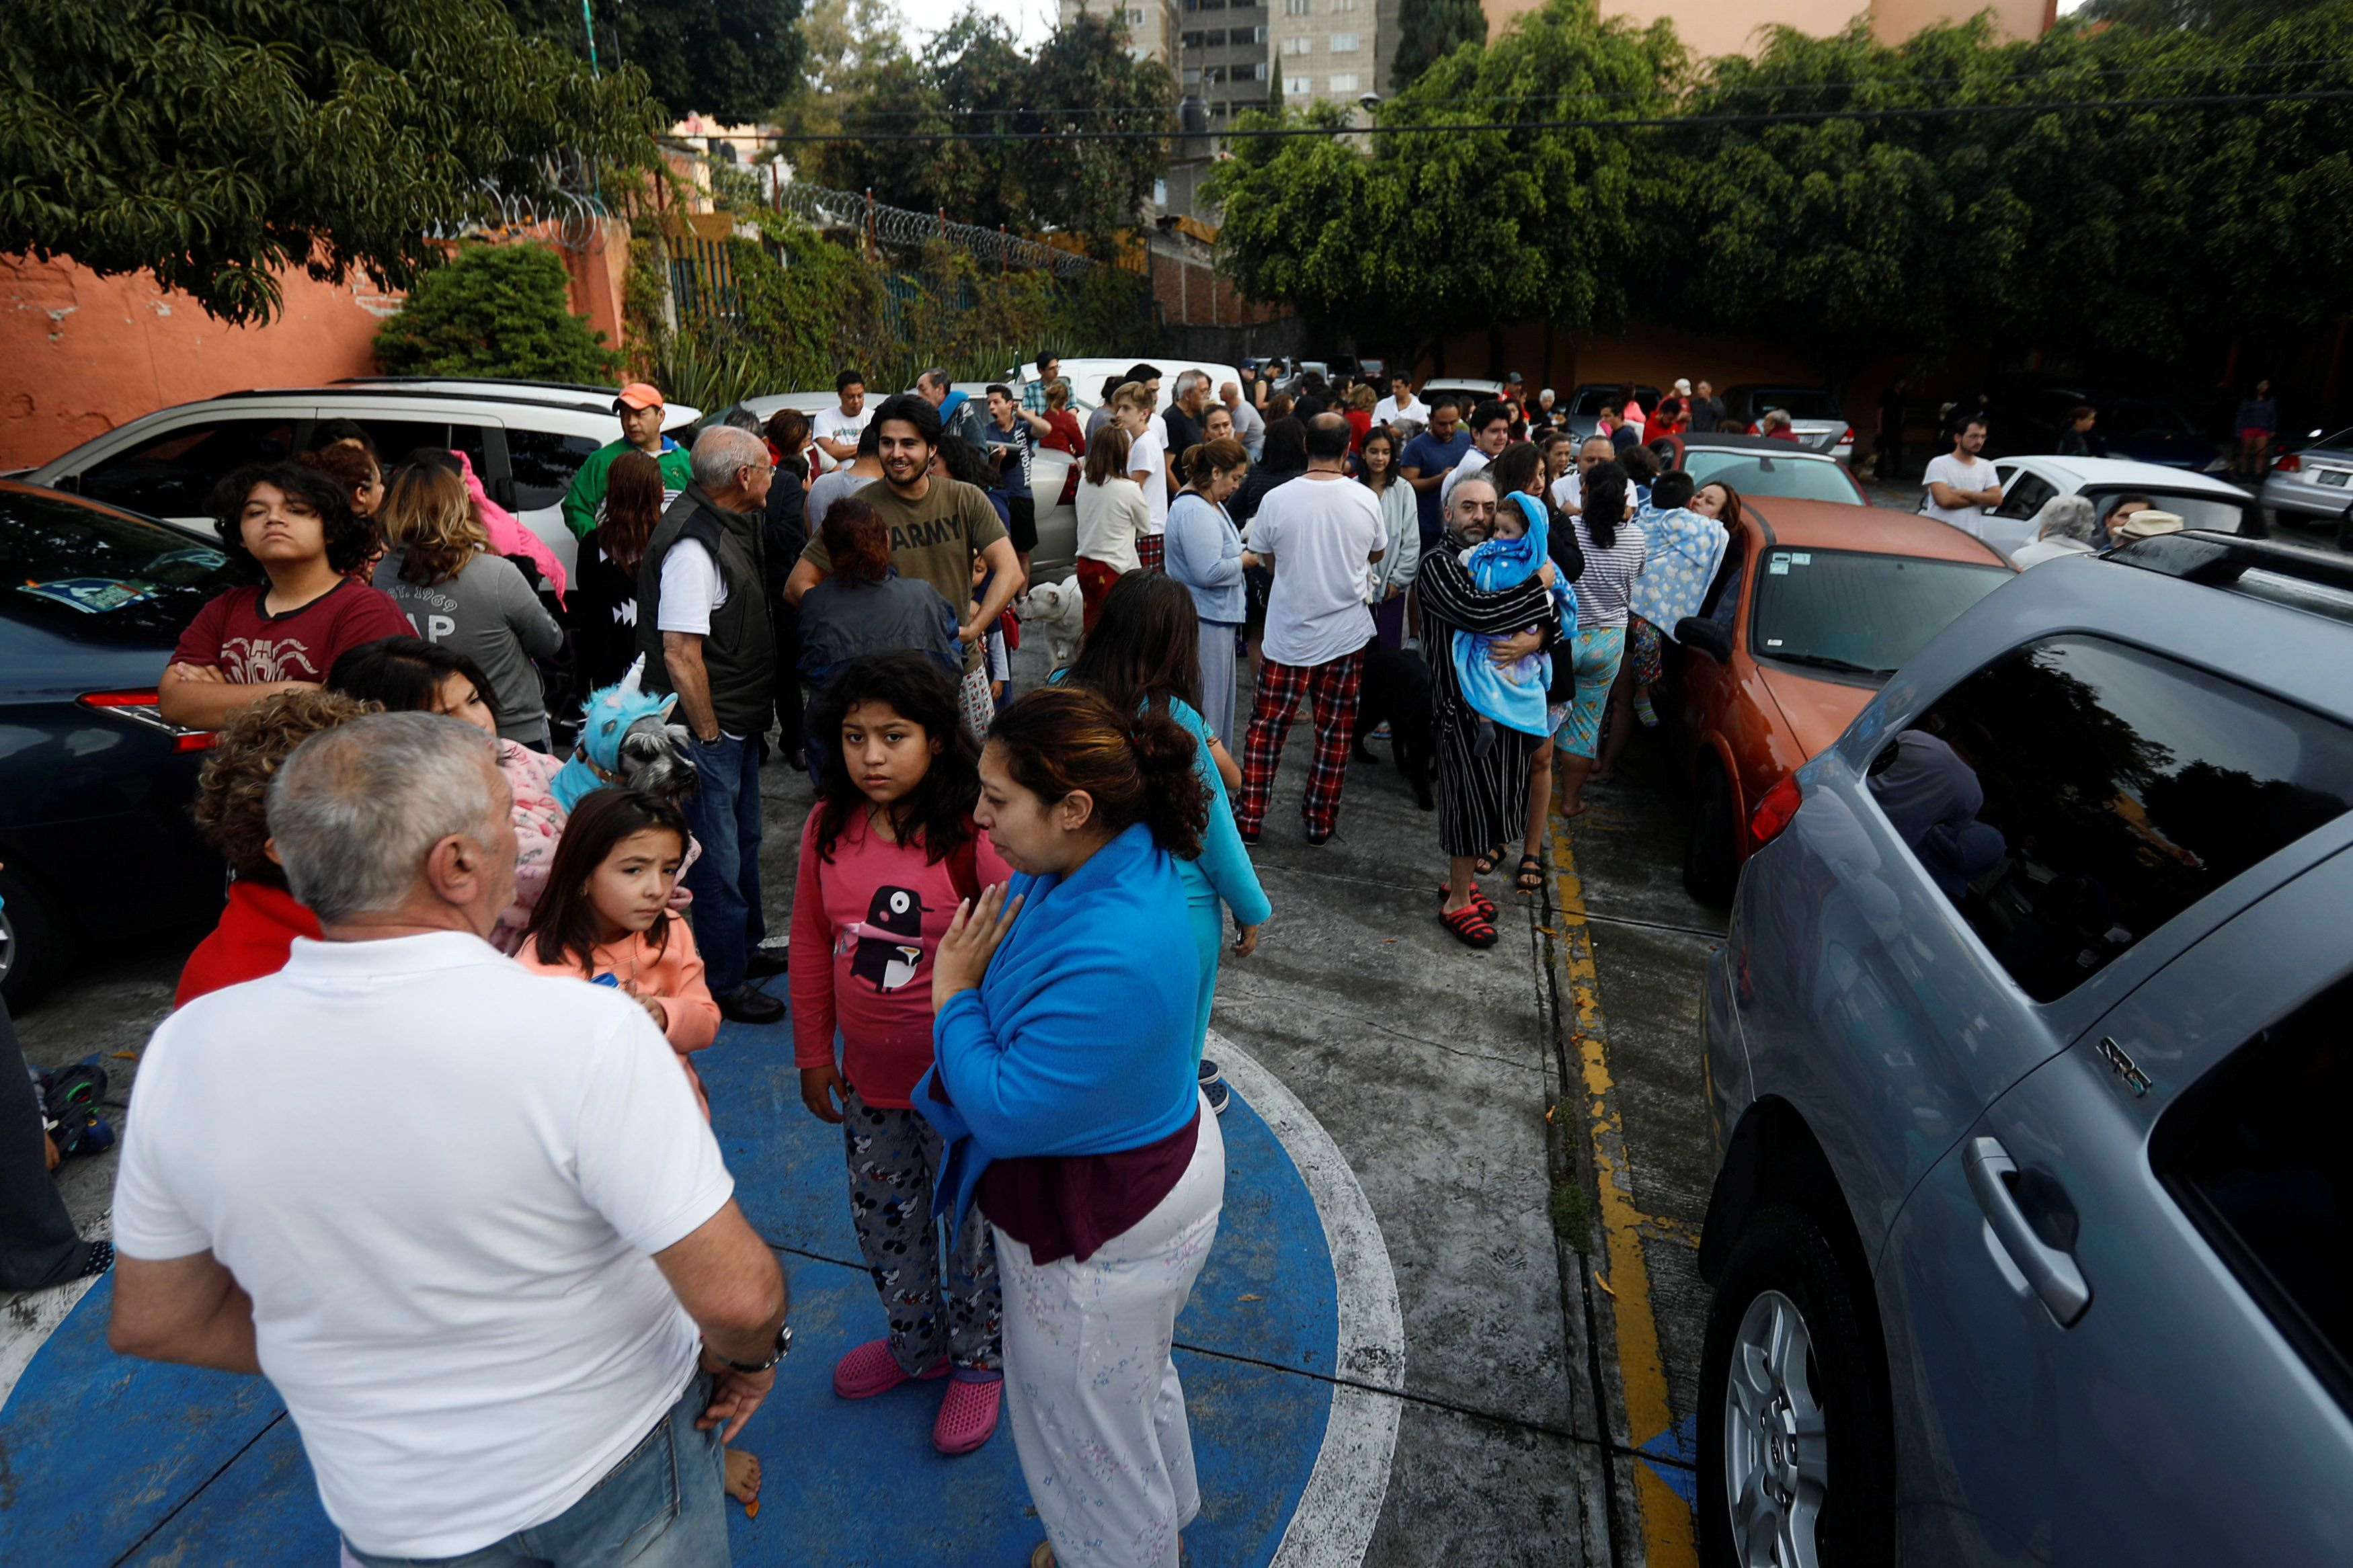 People gather inside a residential area after a tremor was felt in Mexico City, Mexico, on Sept. 23.